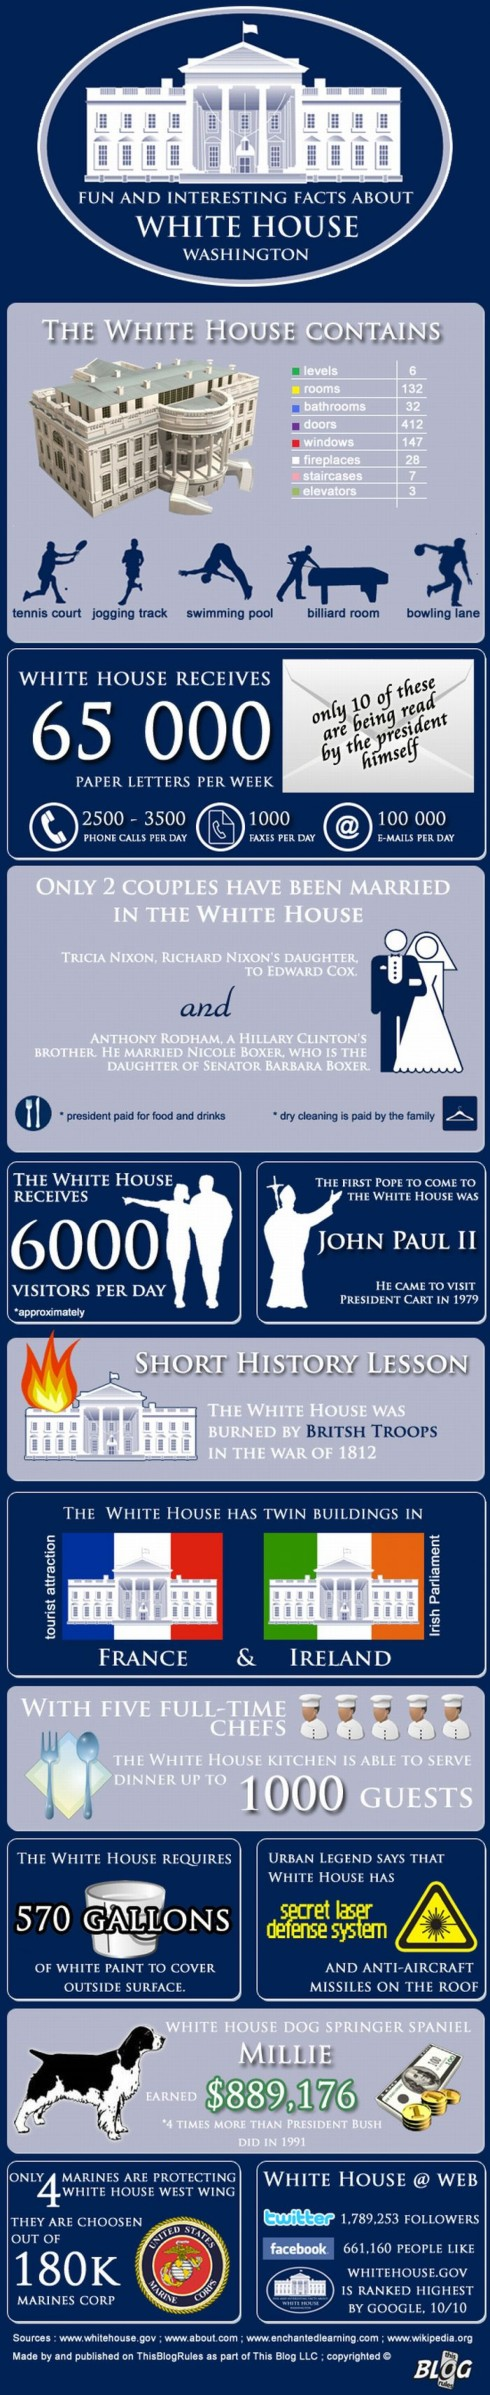 white-house-facts